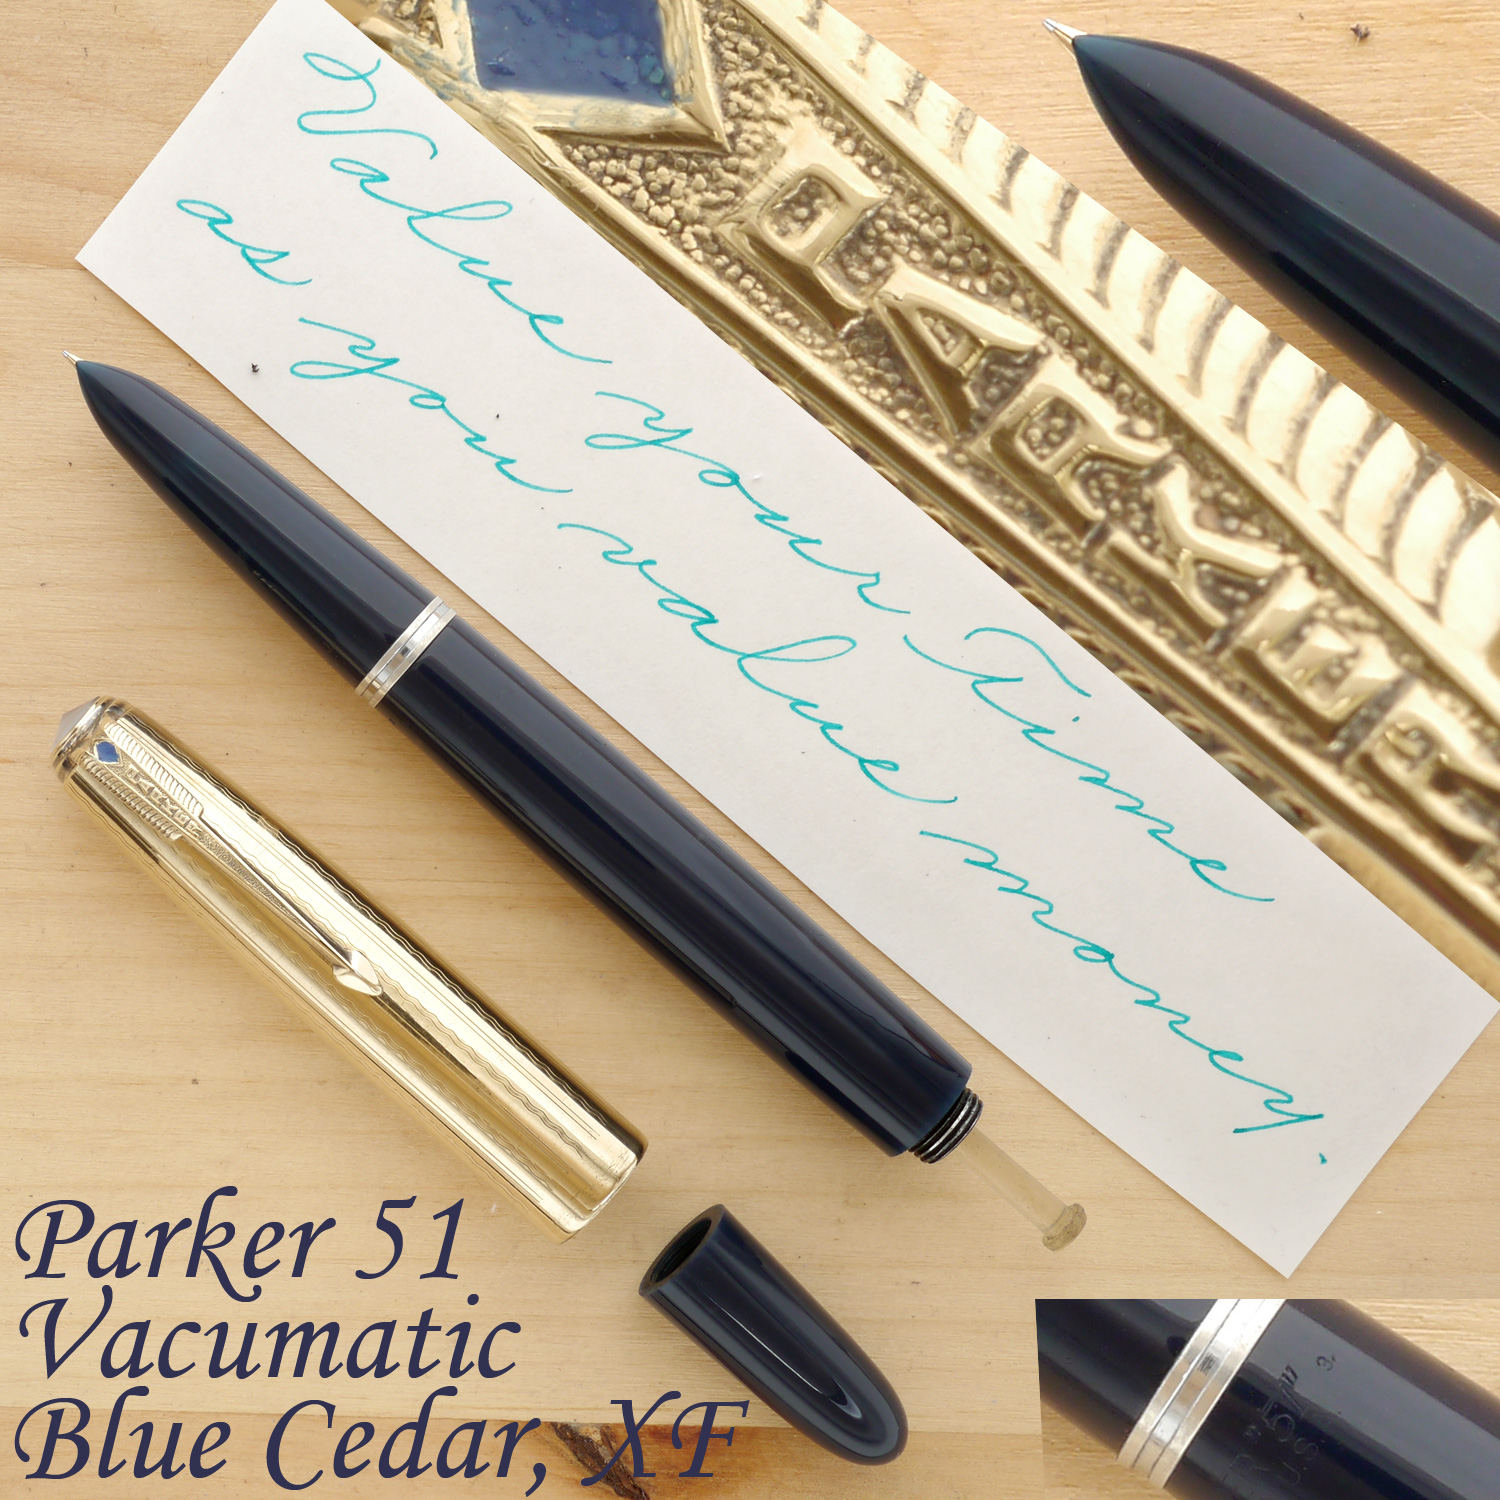 Parker 51 Vacumatic Fountain Pen, Blue Cedar, XF, uncapped, with the blind cap removed